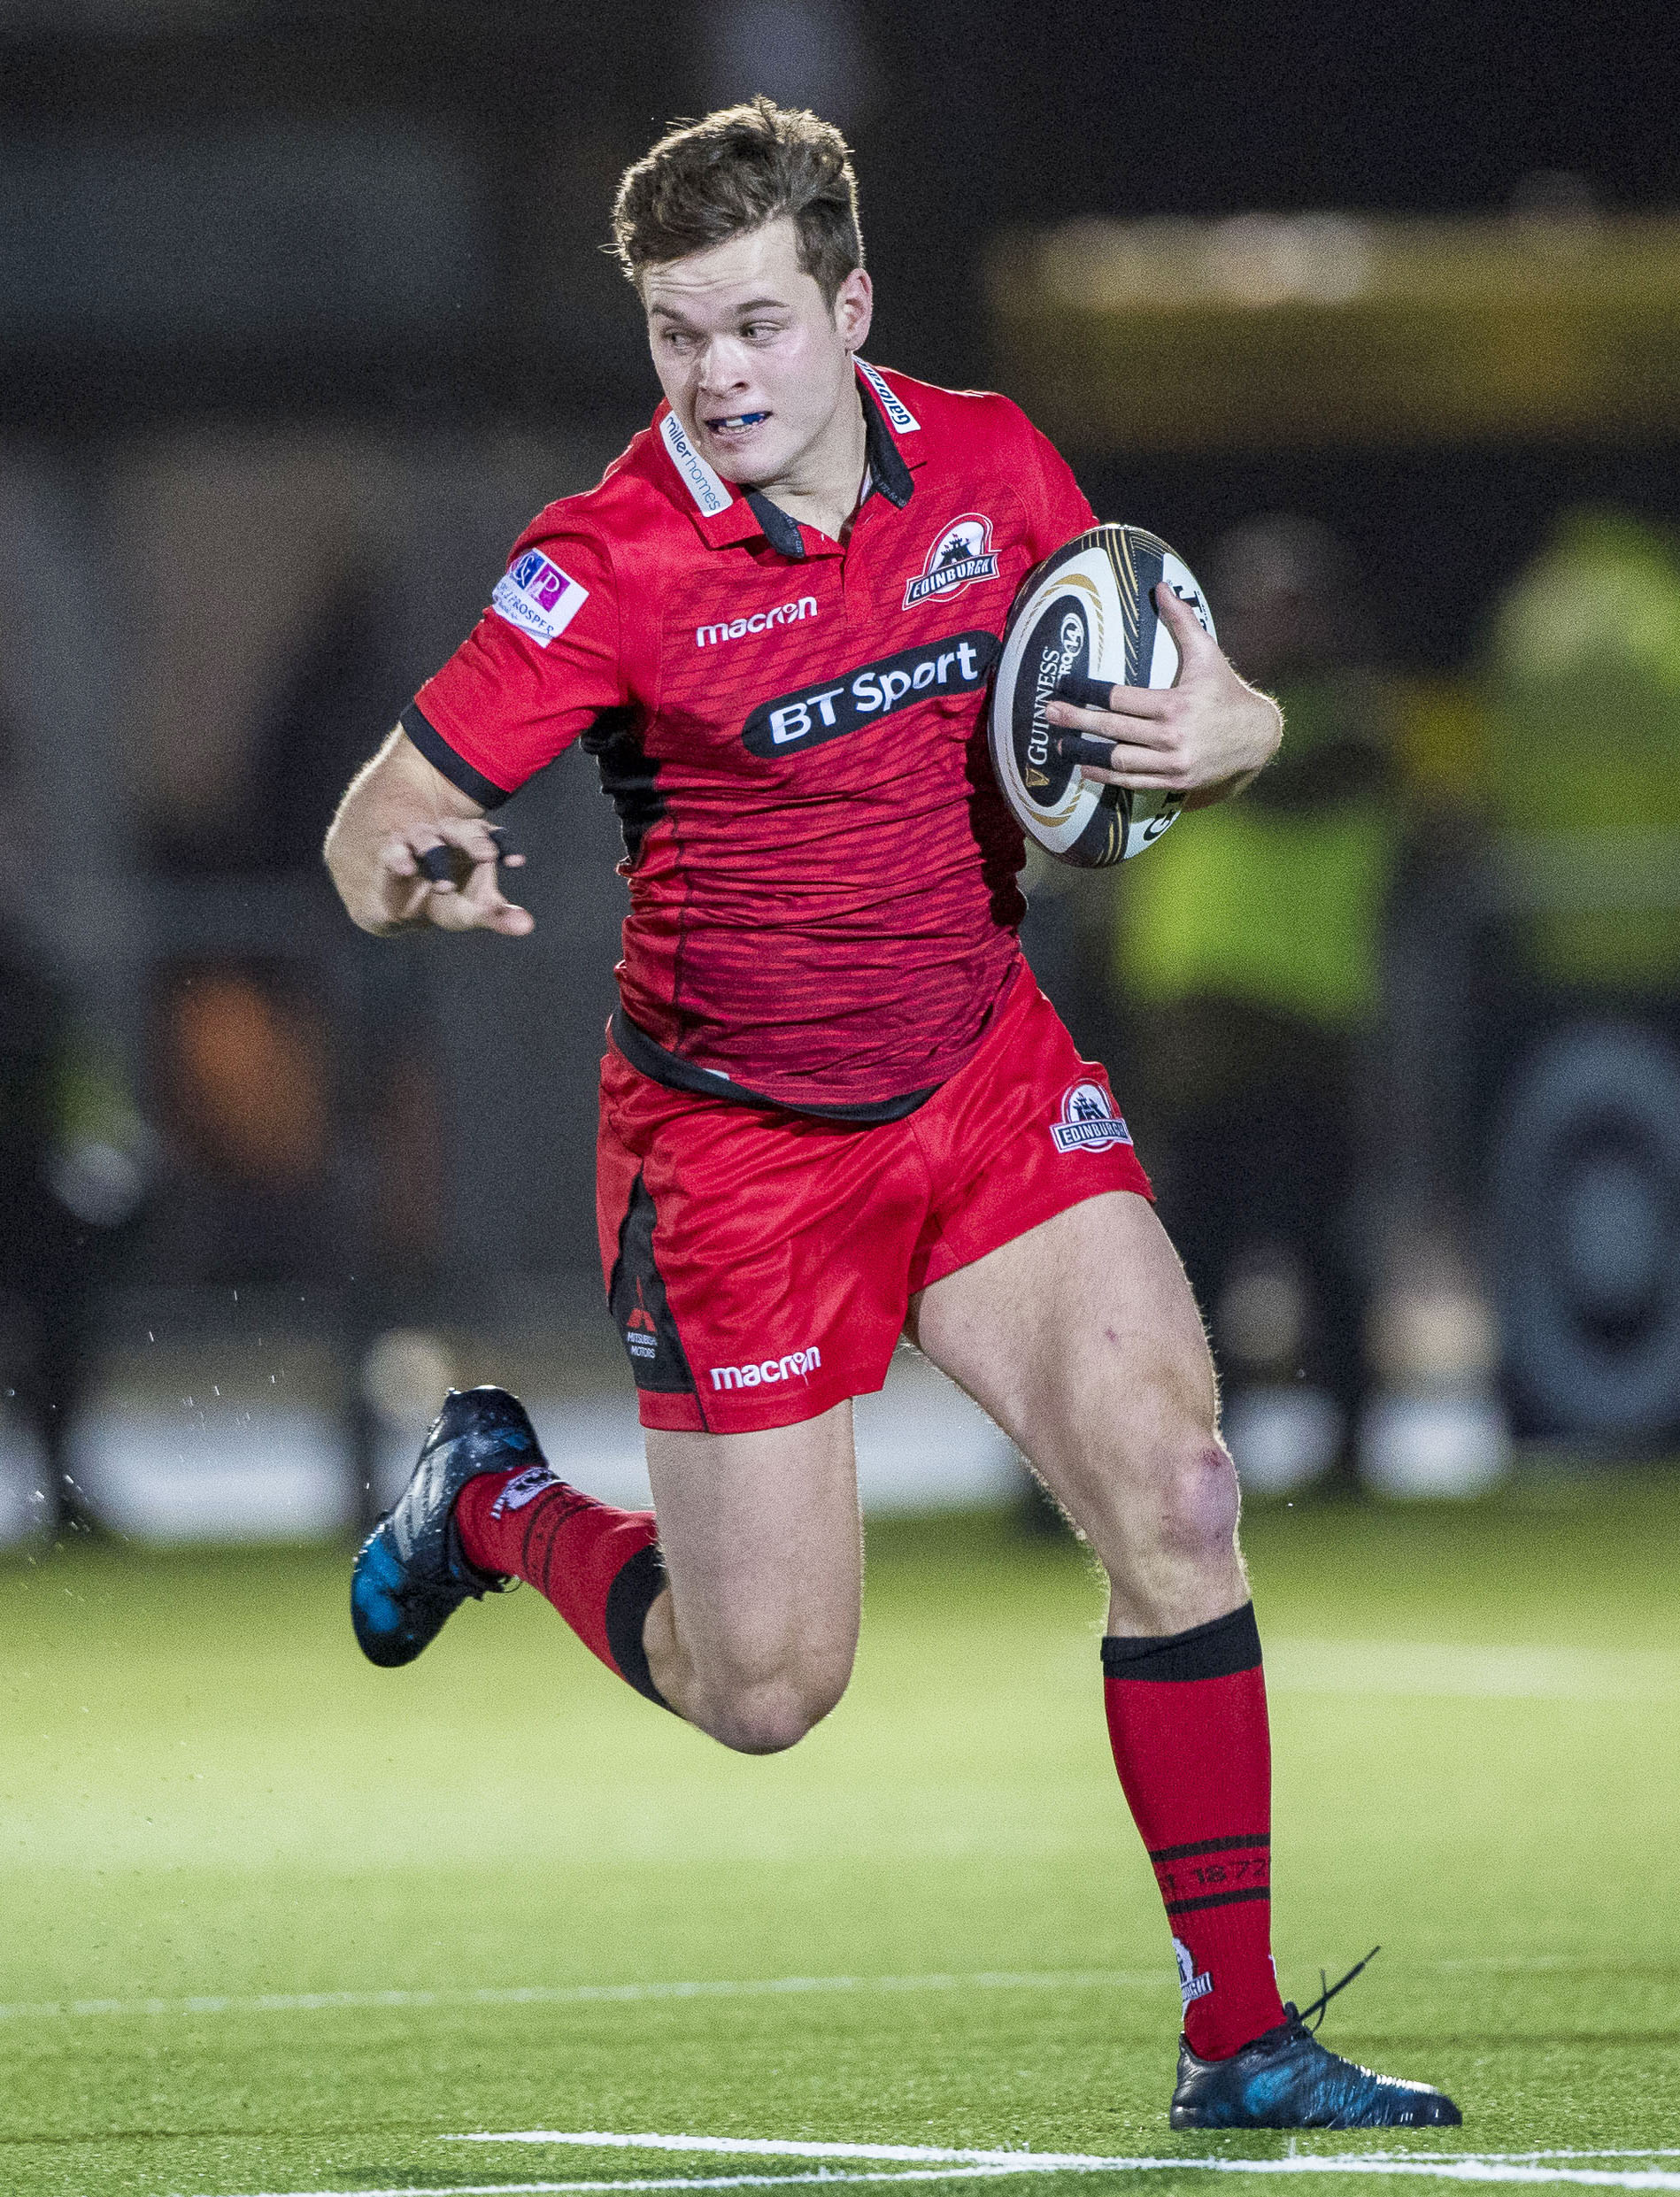 Chris Dean has agreed a new Edinburgh Rugby deal. Image SNS Group/Scottish Rugby